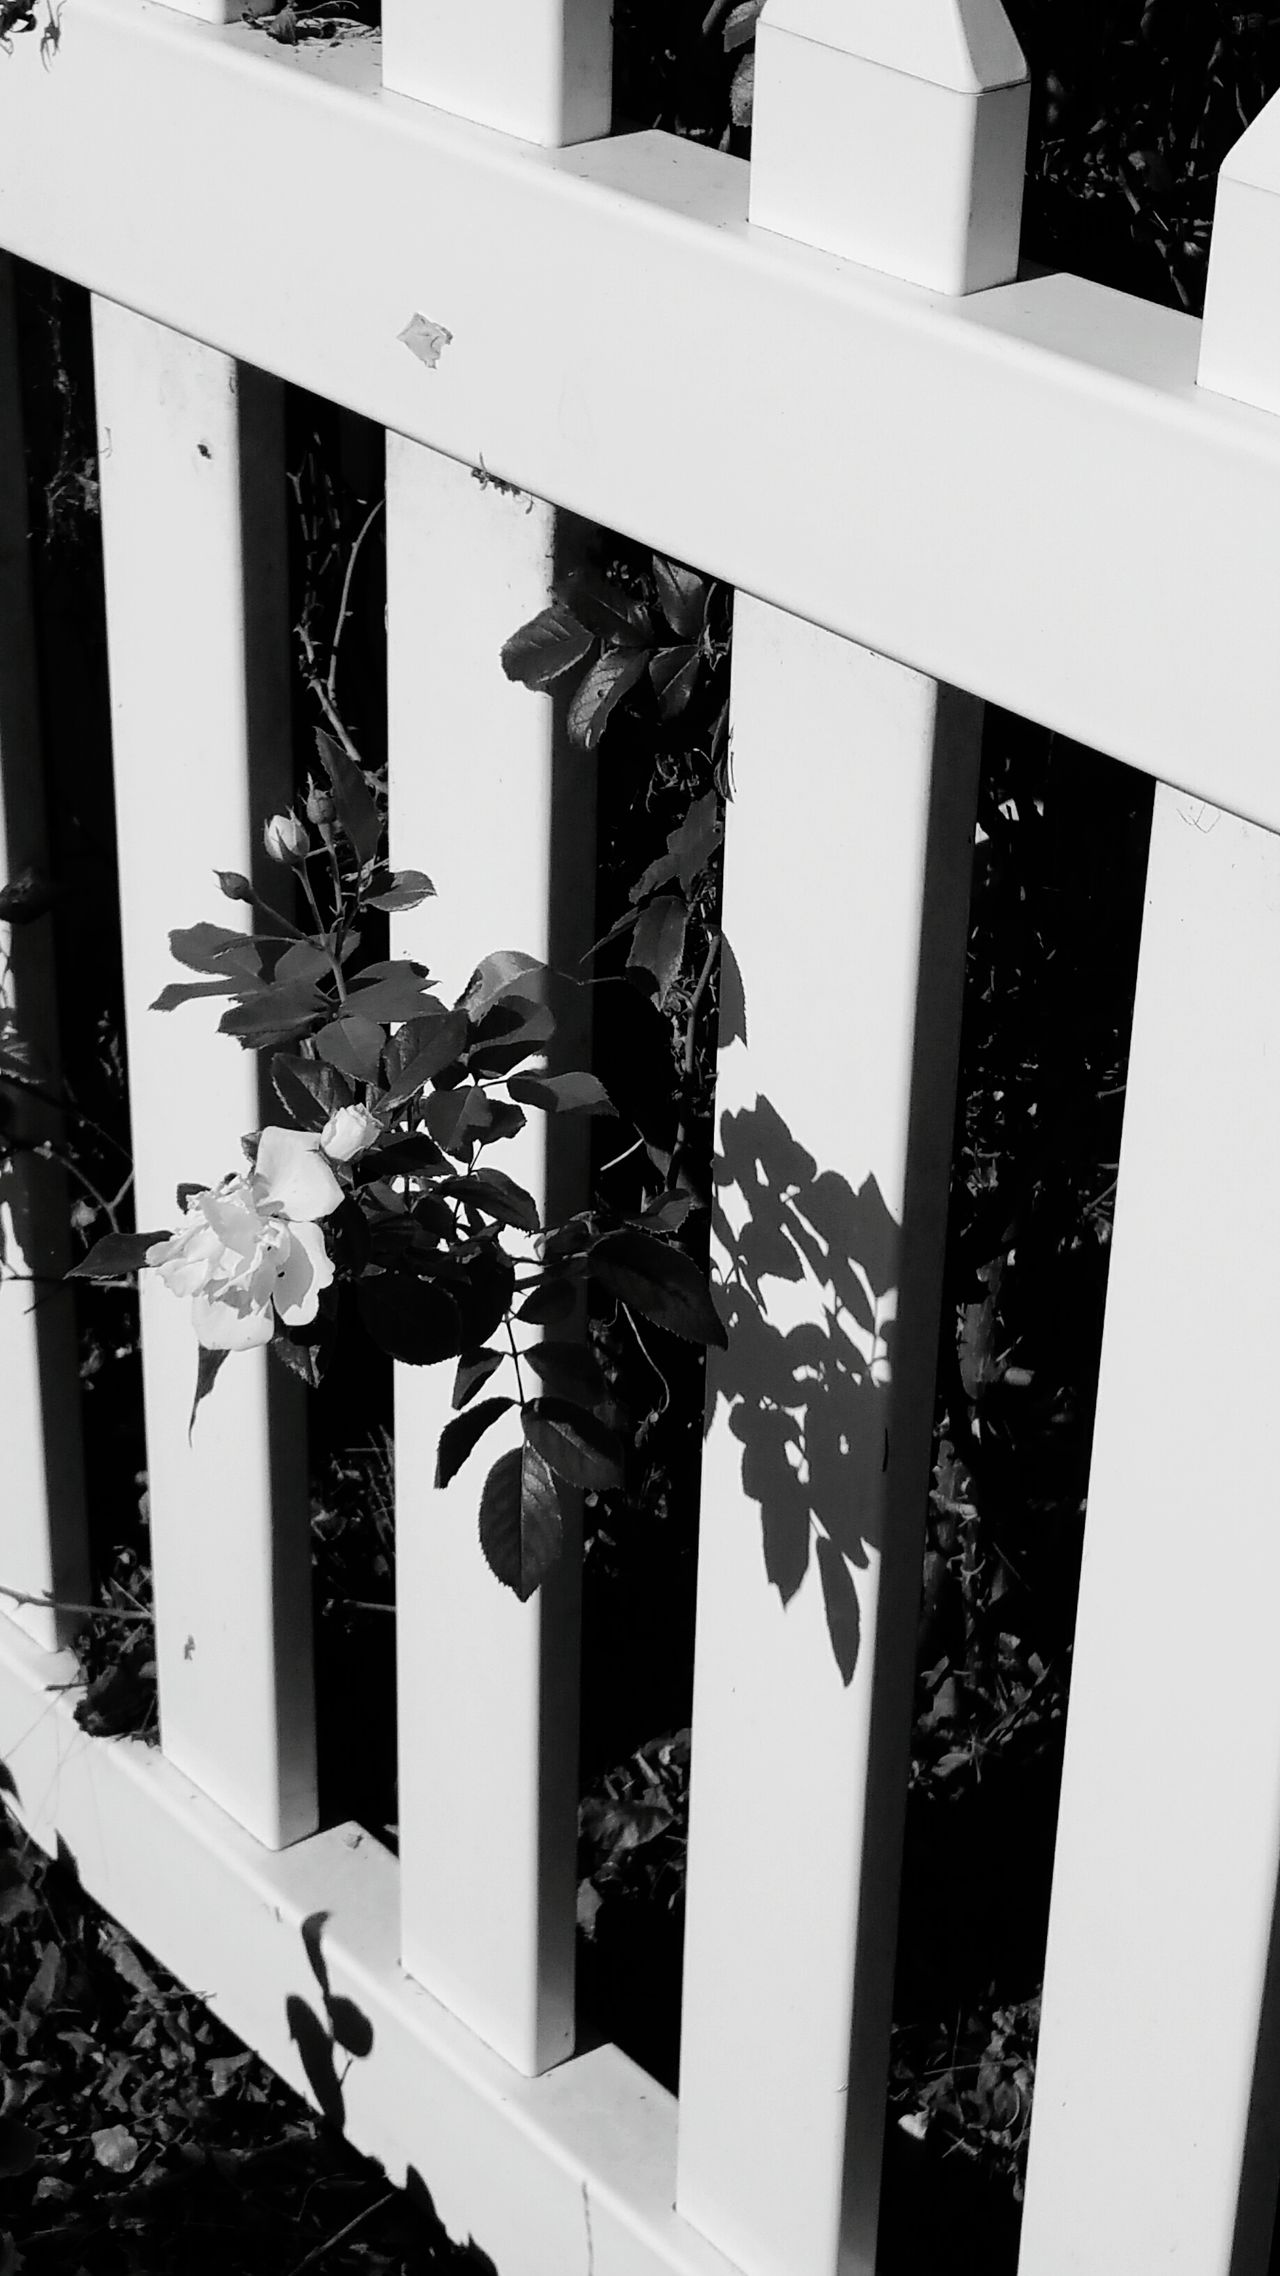 Fence White Fence Black & White Blackandwhite Photography Flower Through Fence Flower Flower Collection Leaves Lines